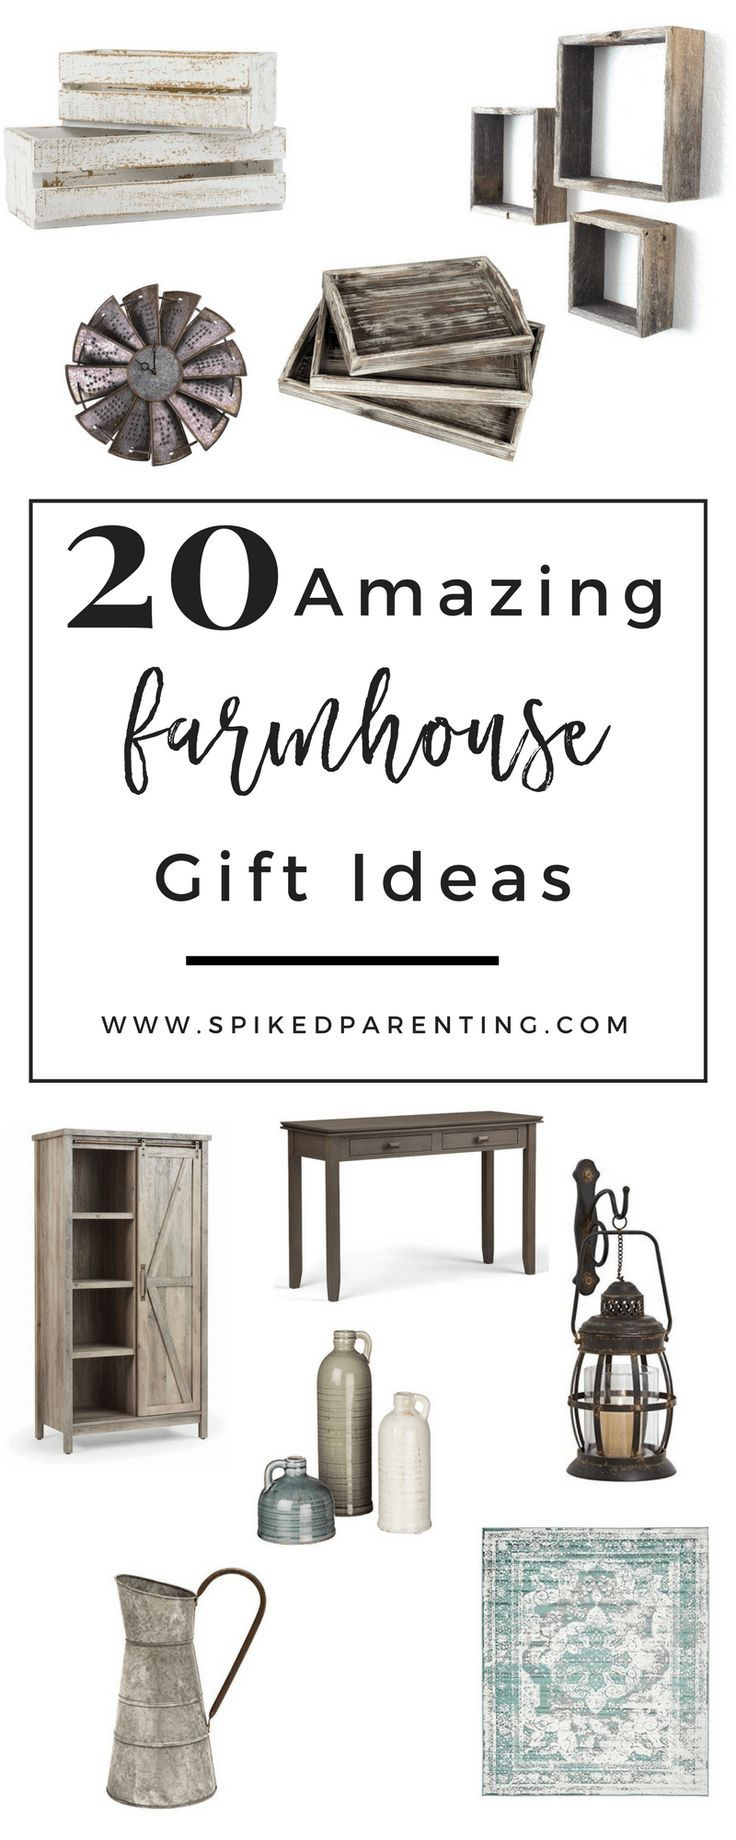 20 Amazing Farmhouse Decor Gift Ideas | Gift, Organisations and ...